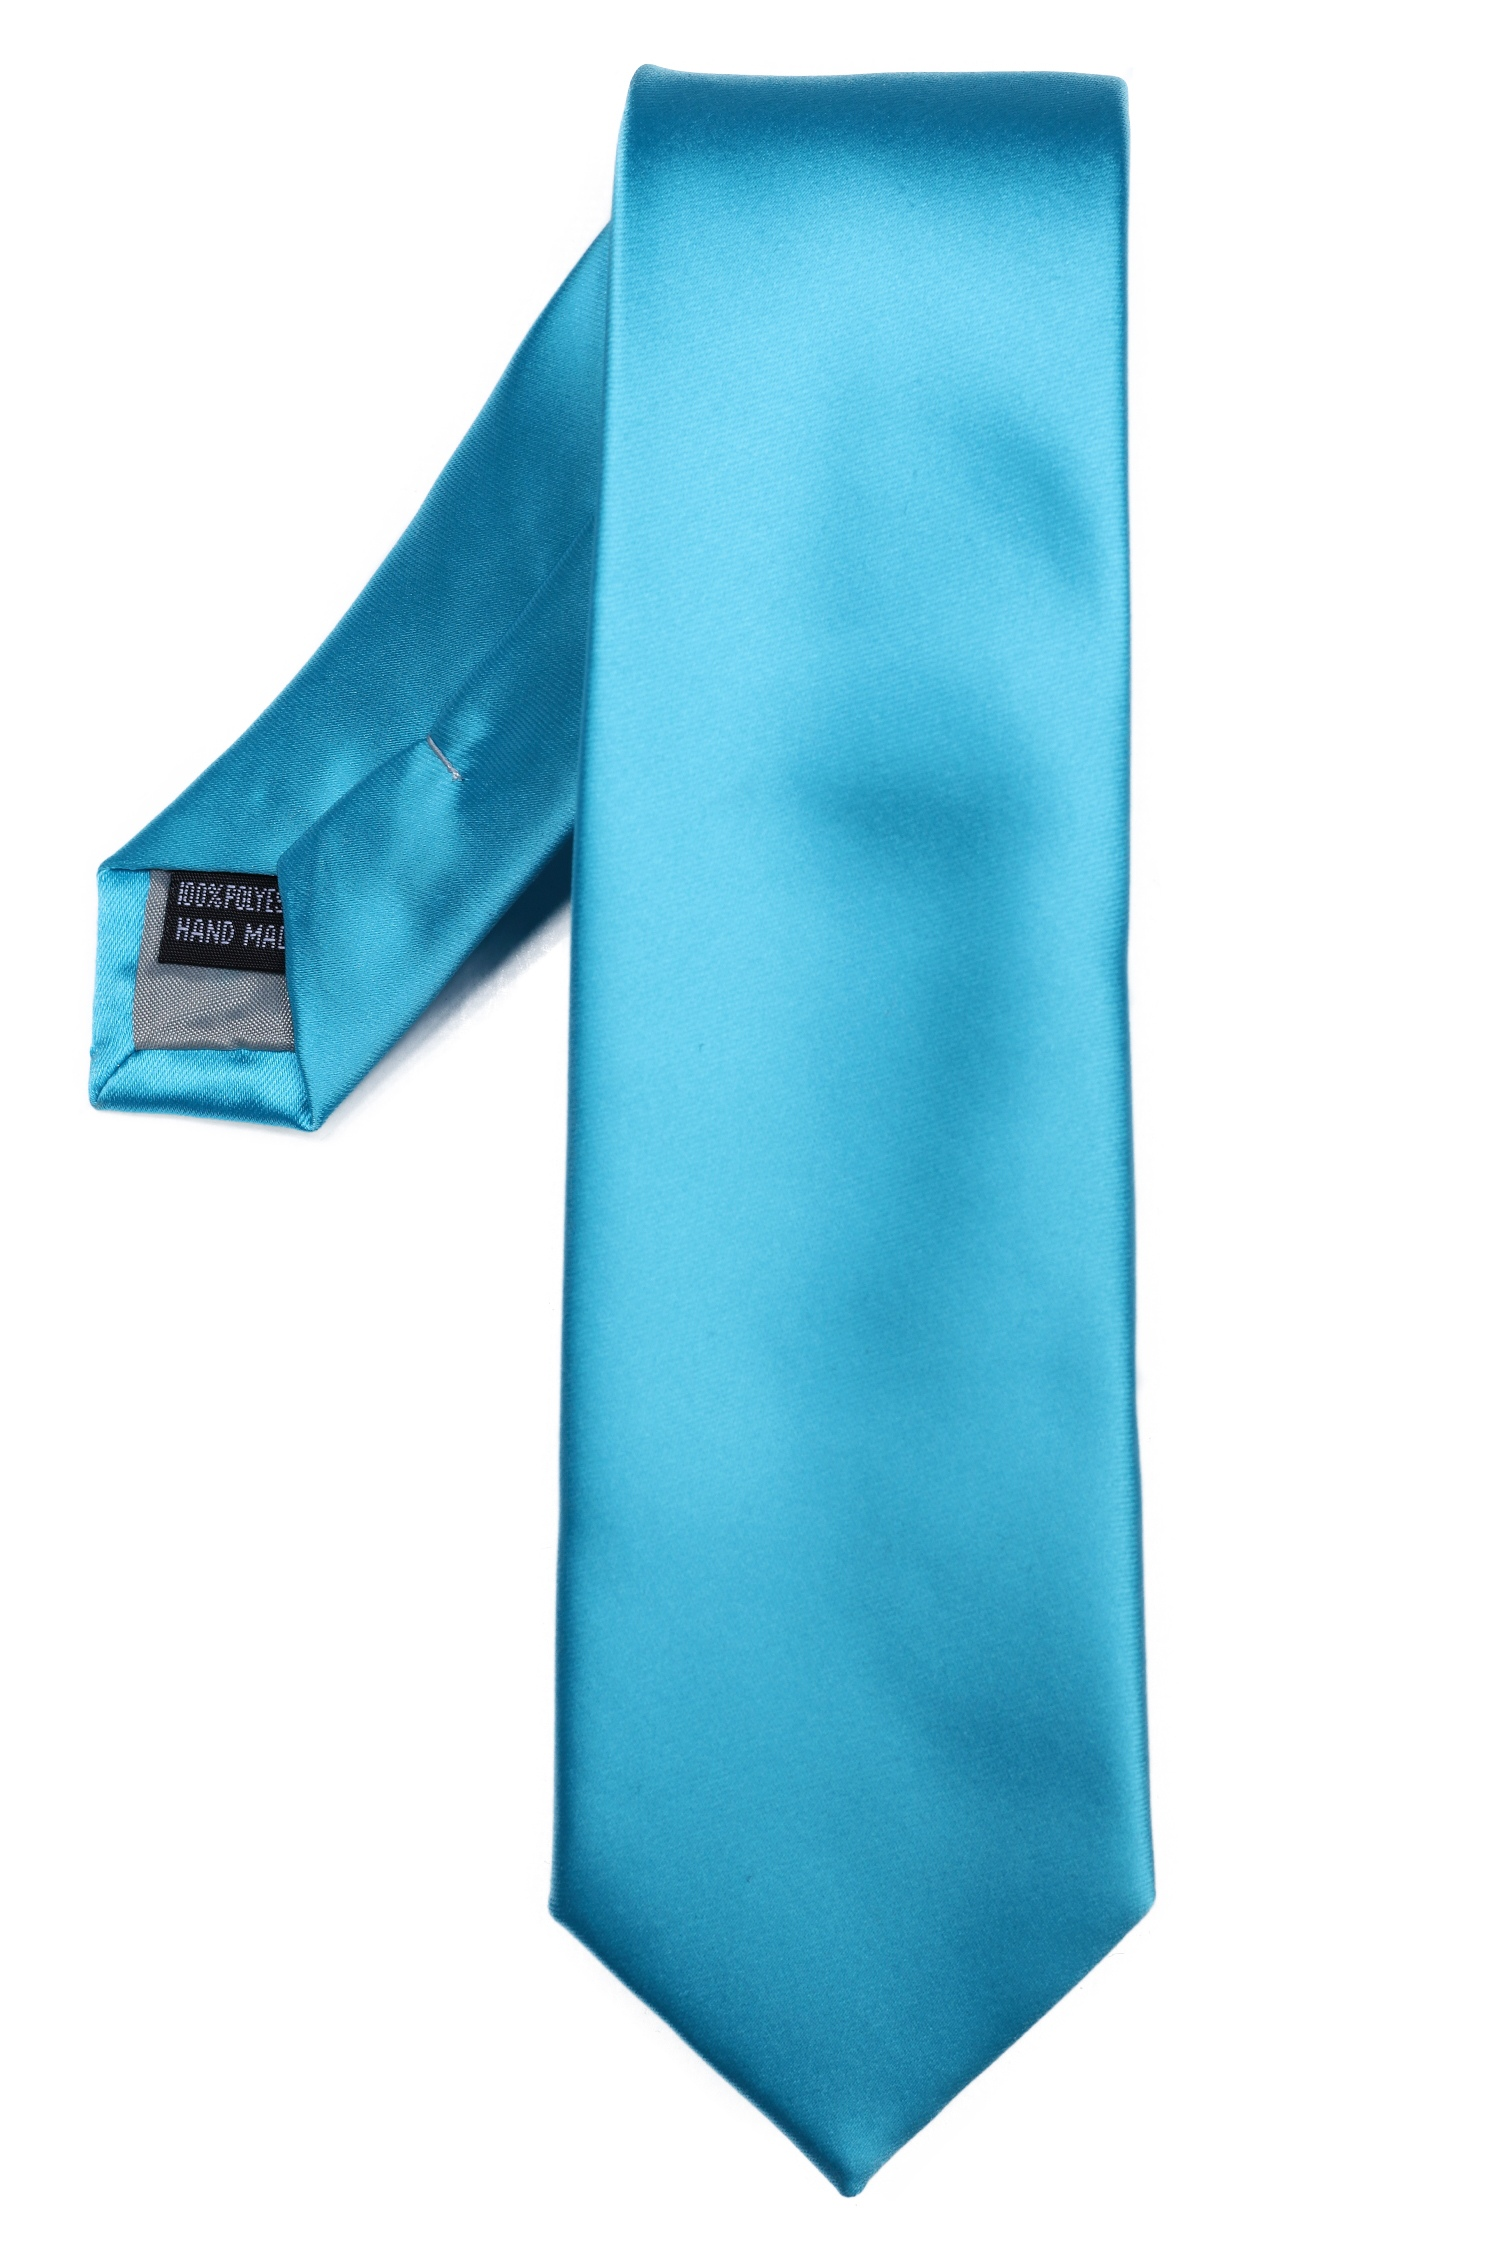 https://www.leadermode.com/170428/virtuose-slim-turquoise.jpg